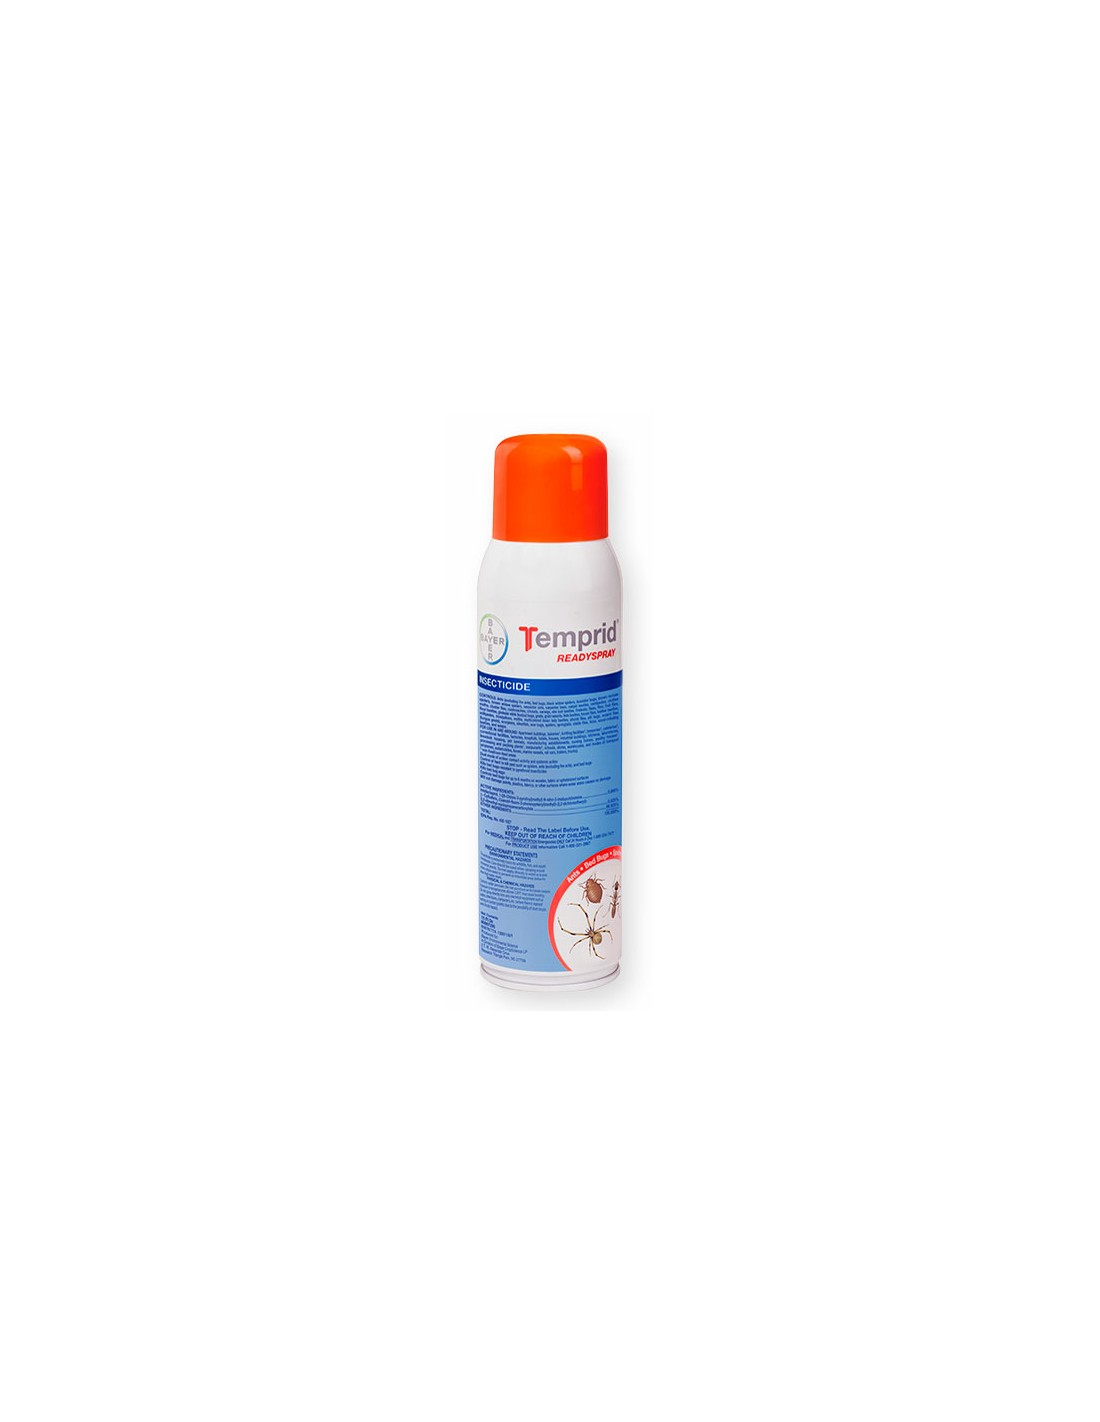 Do you need a spray to kill clothes moths if you have the pheromone traps? And is it safe to use with dogs I. The h